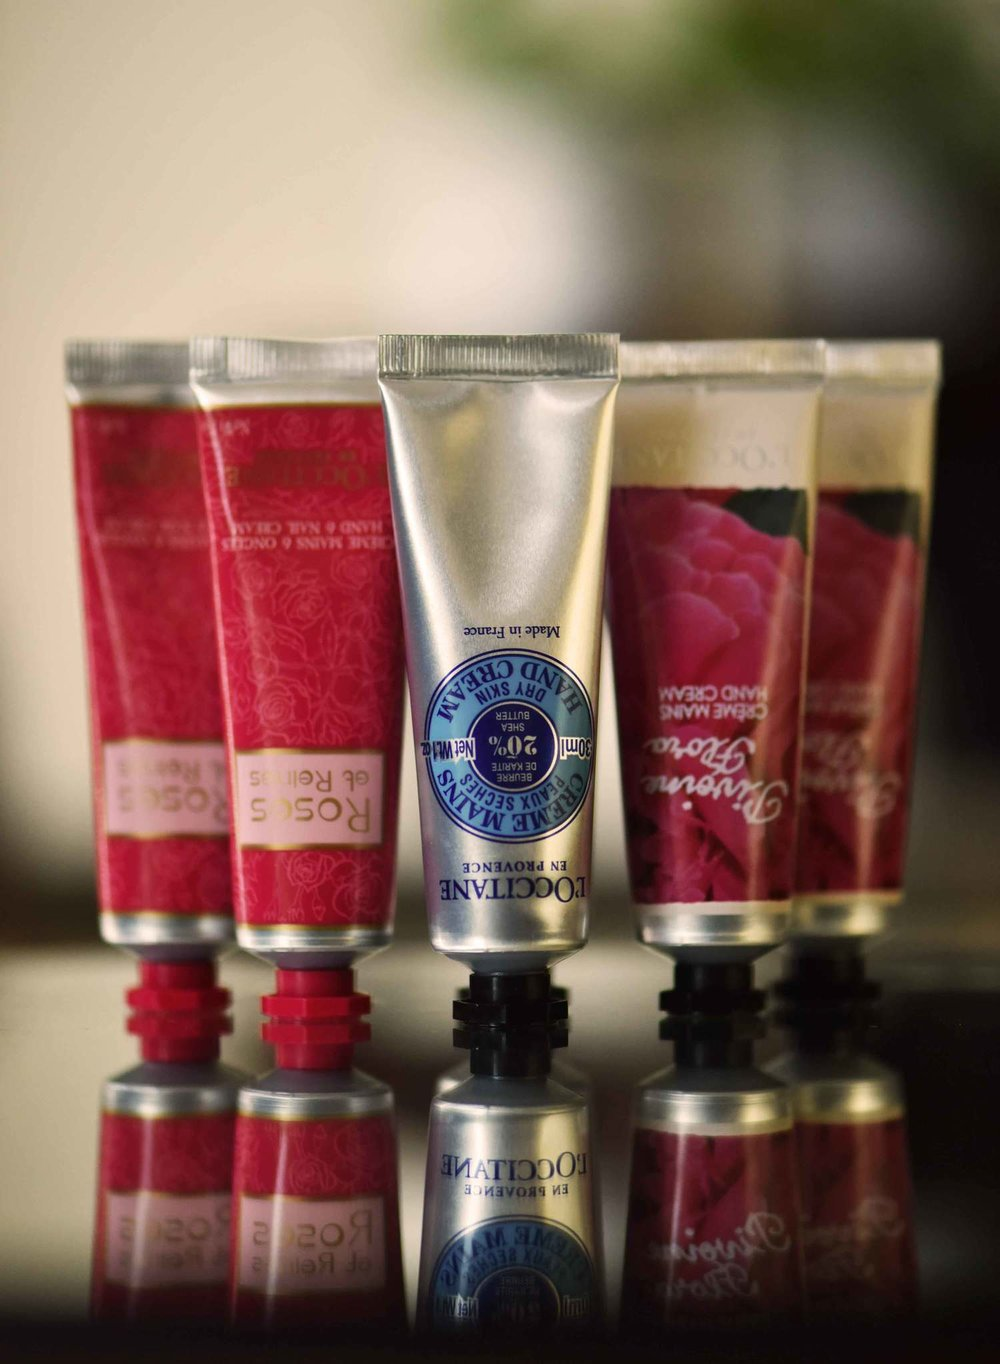 L'Occitane hand cream. Image©sourcingstyle.com